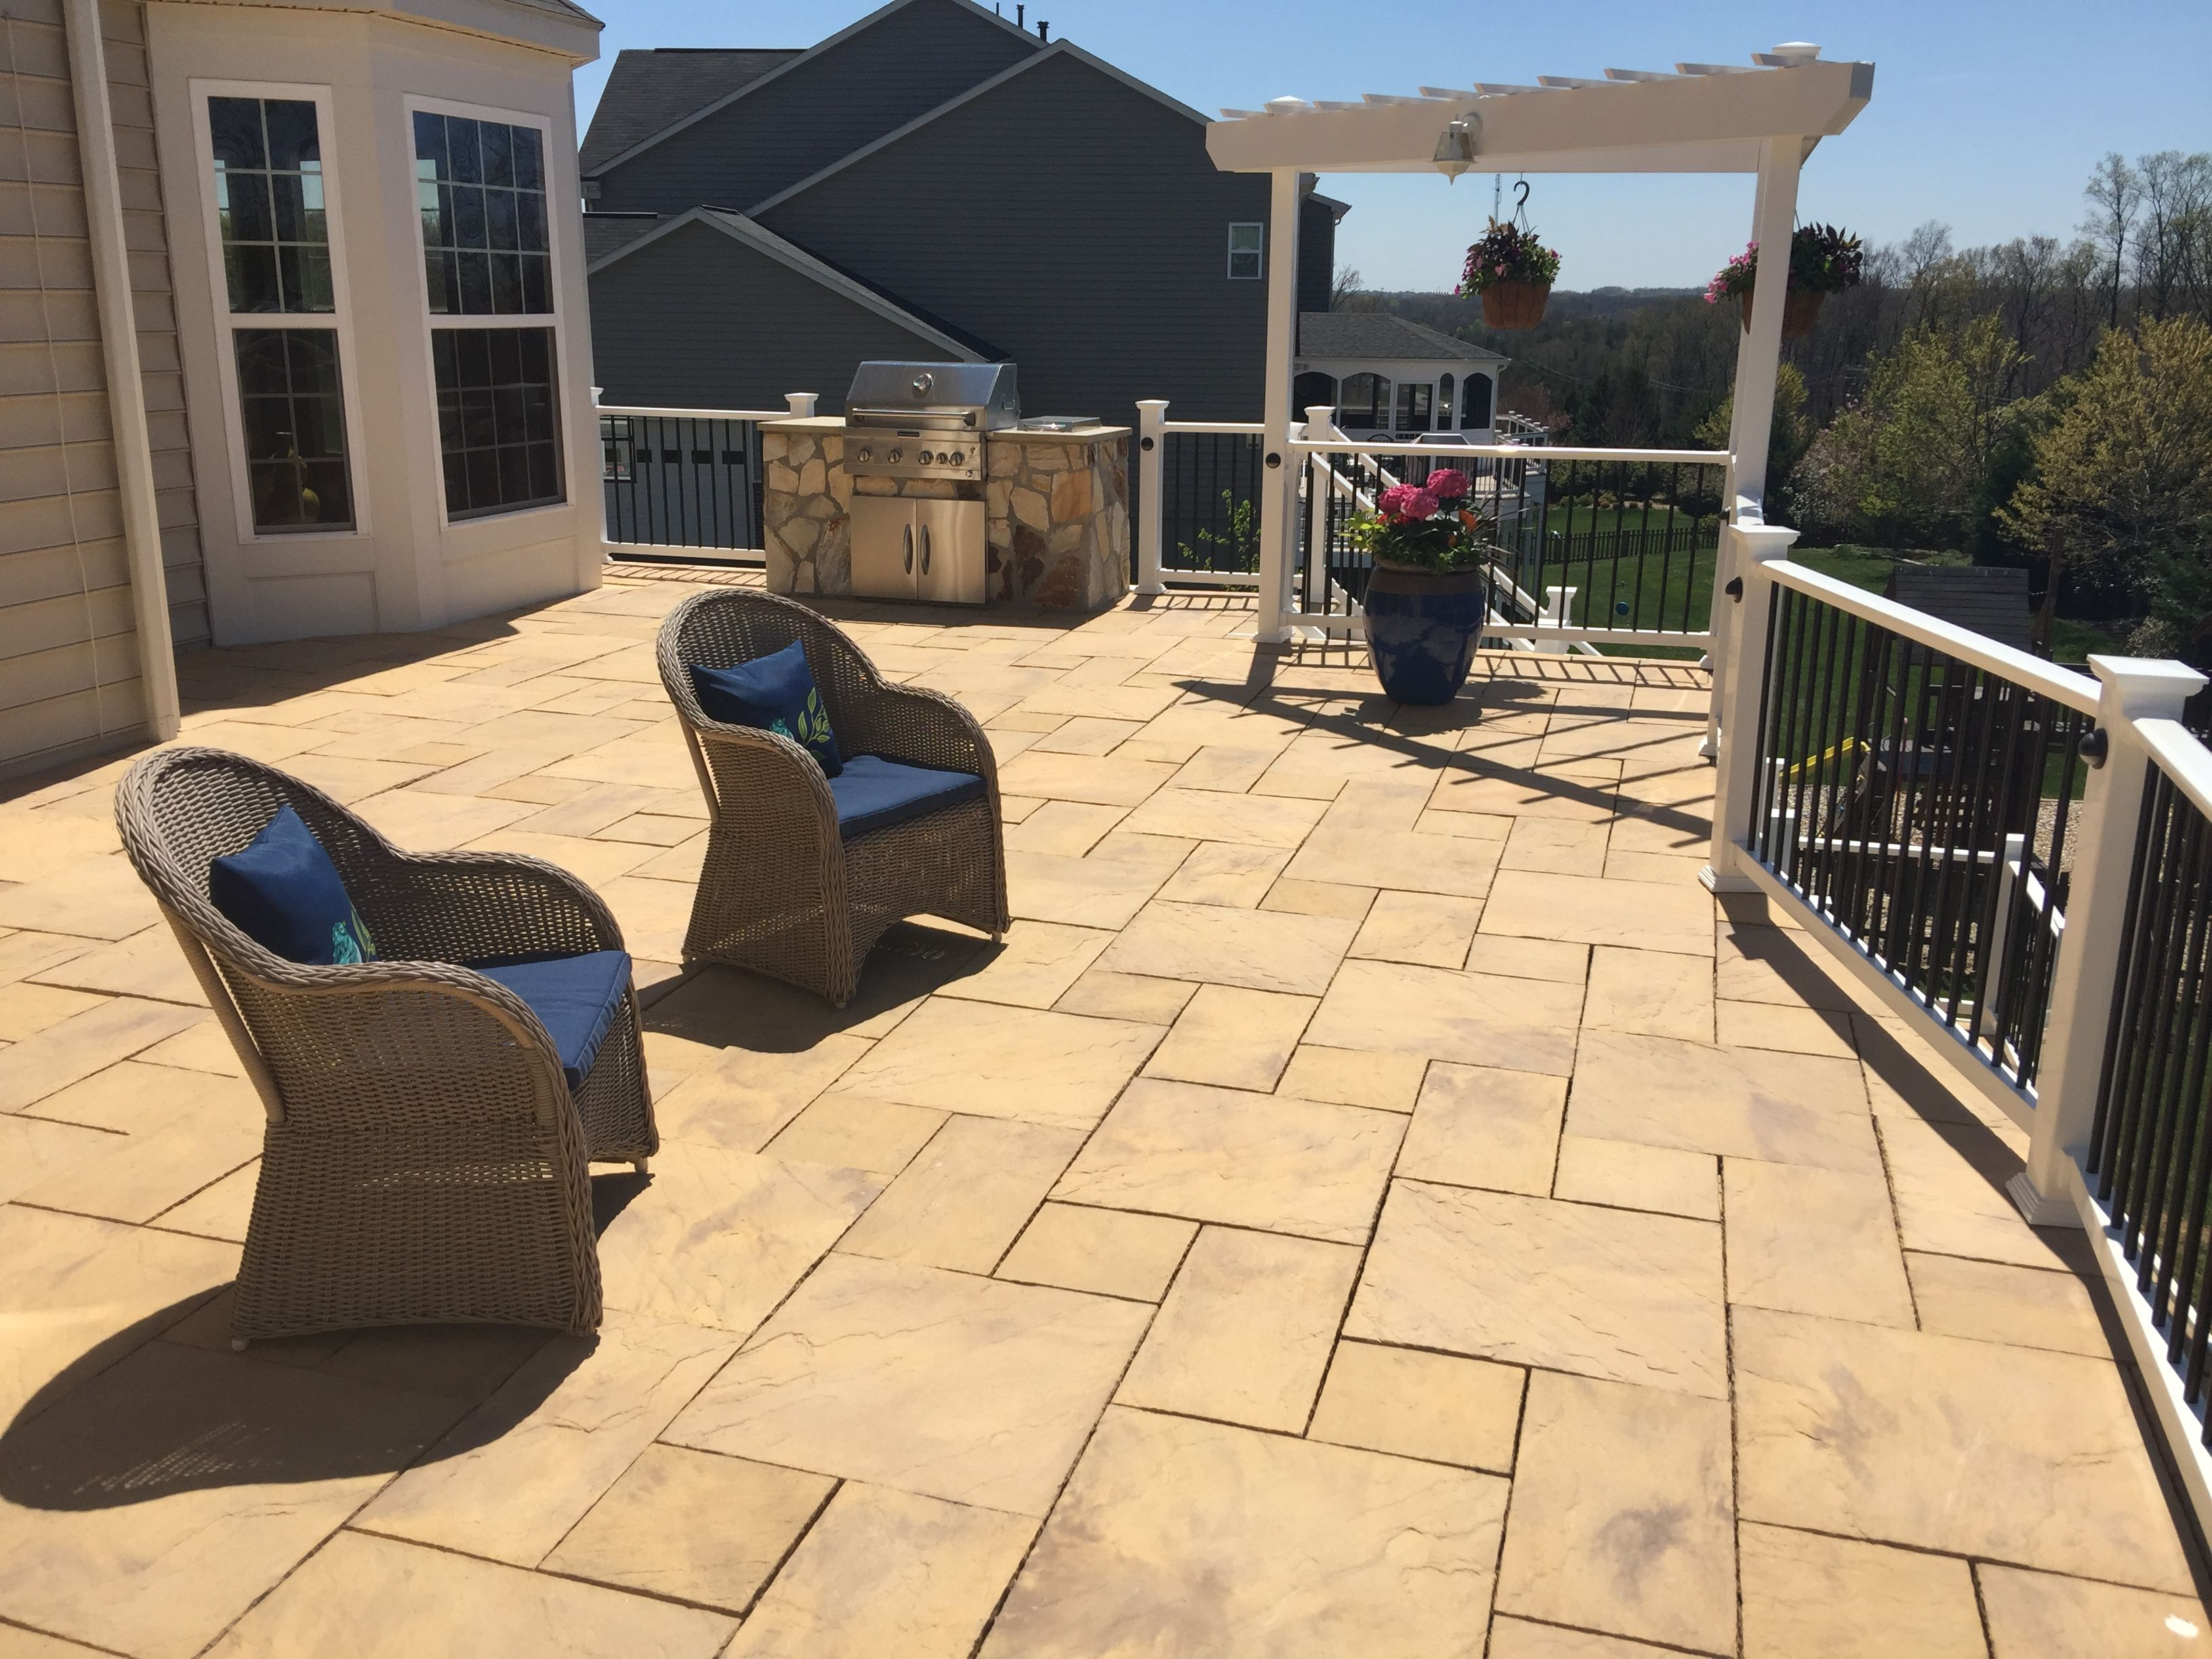 A Gorgeous Deck With Stone Paver Decking An Outdoor Kitchen Grill